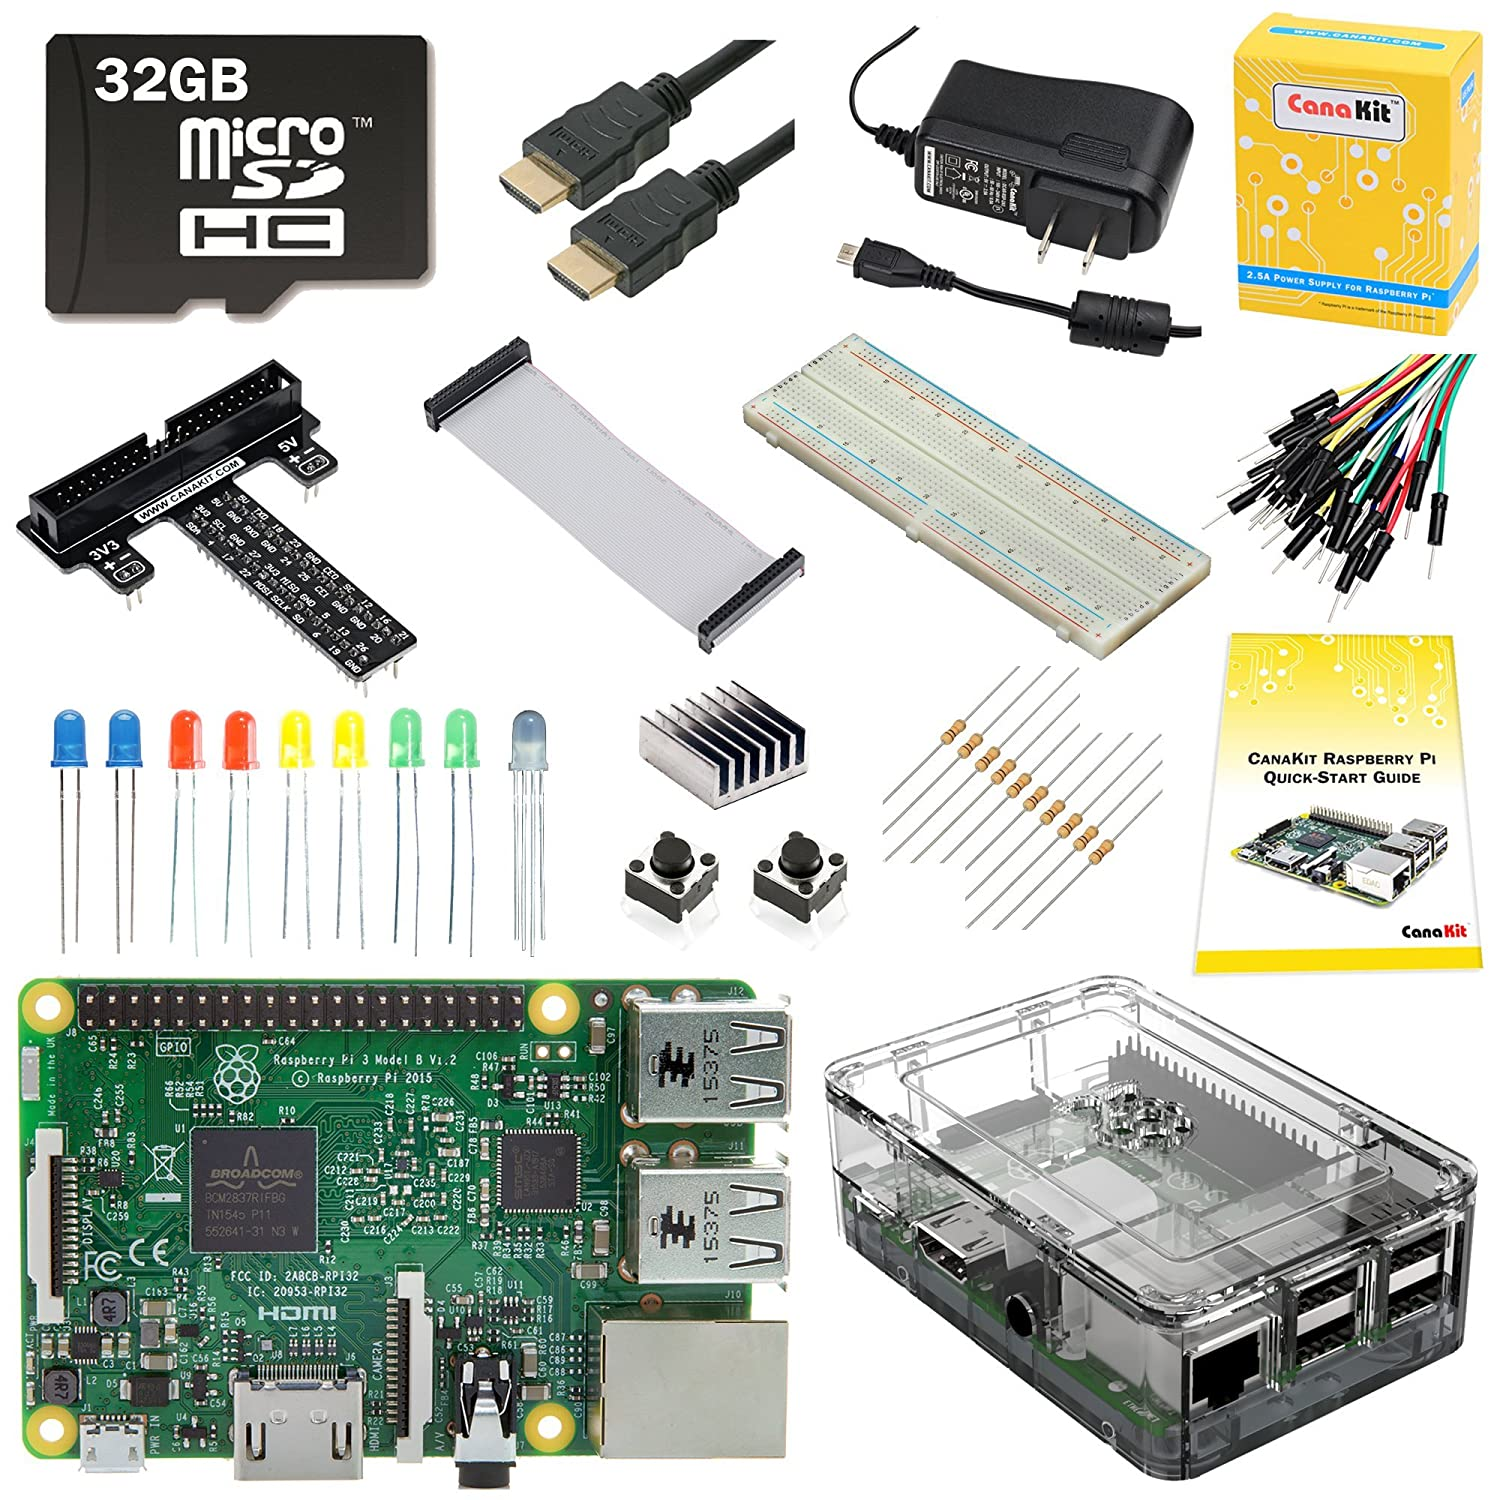 CanaKit Raspberry Pi 3 Ultimate Starter Kit - 32 GB Edition